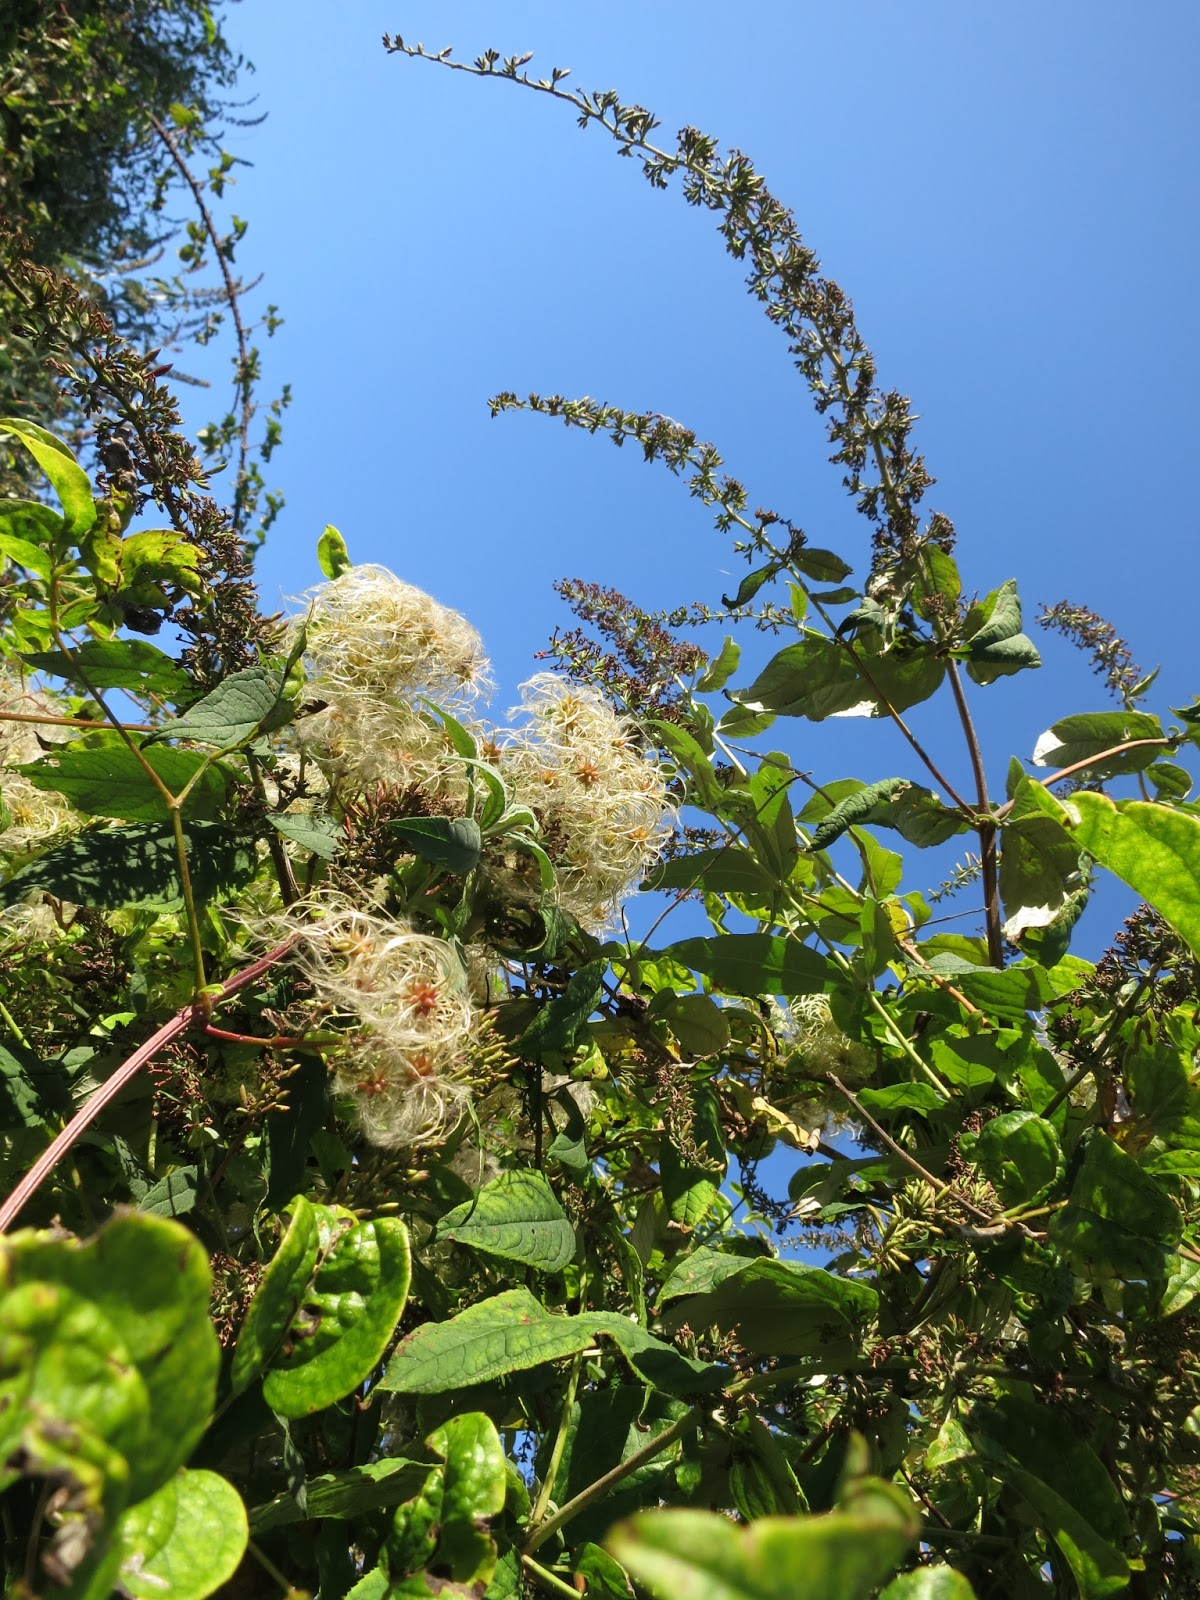 Seed heads of wild clematis and dead buddlleia flowers September 24th 2014